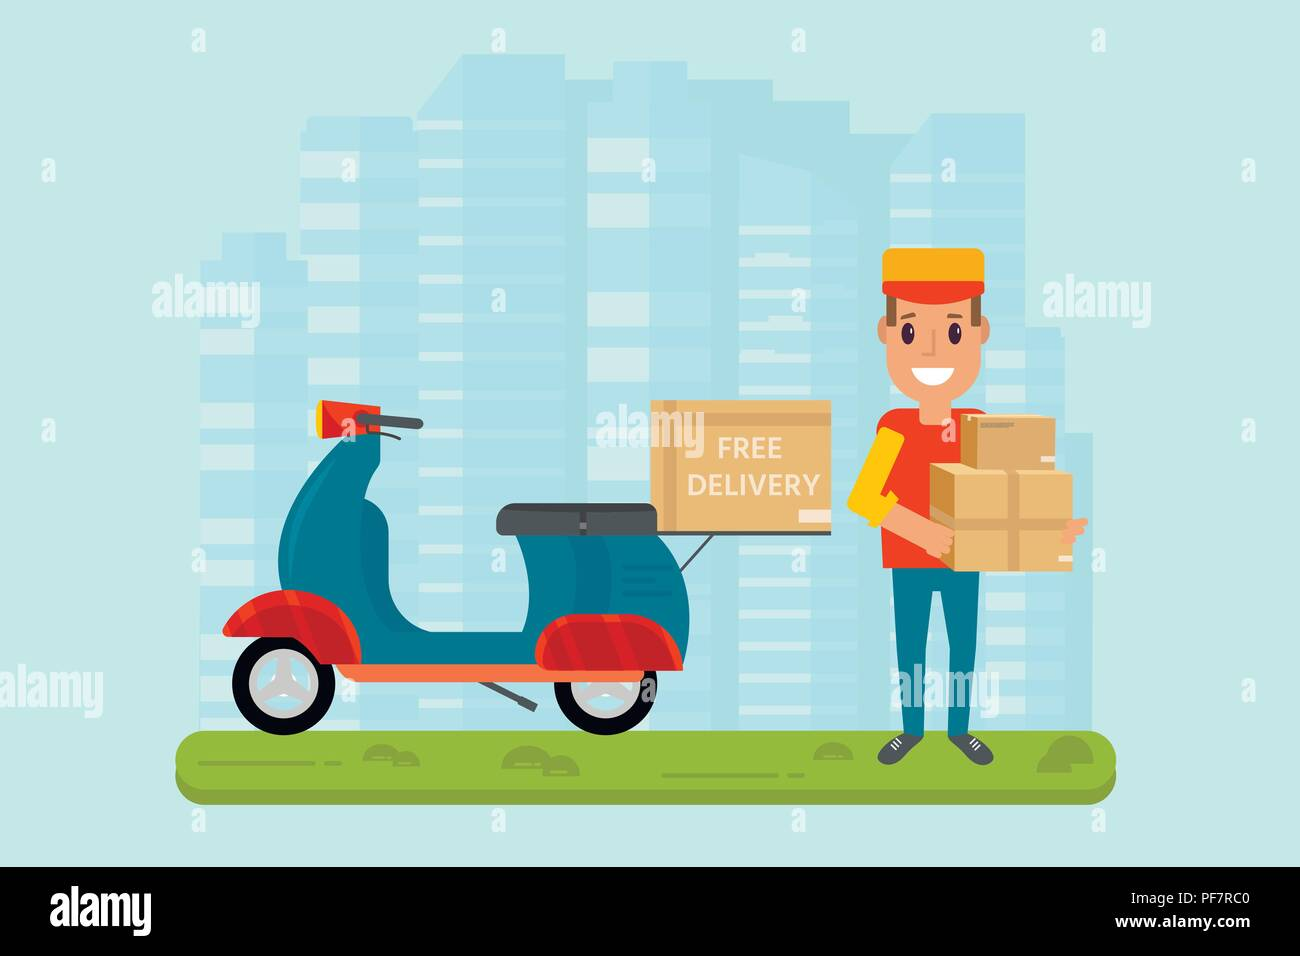 Logistics and delivery service concept: motorbike, smiling couriers with packages, scooter, building and city background. Postal horizontal banner des Stock Vector